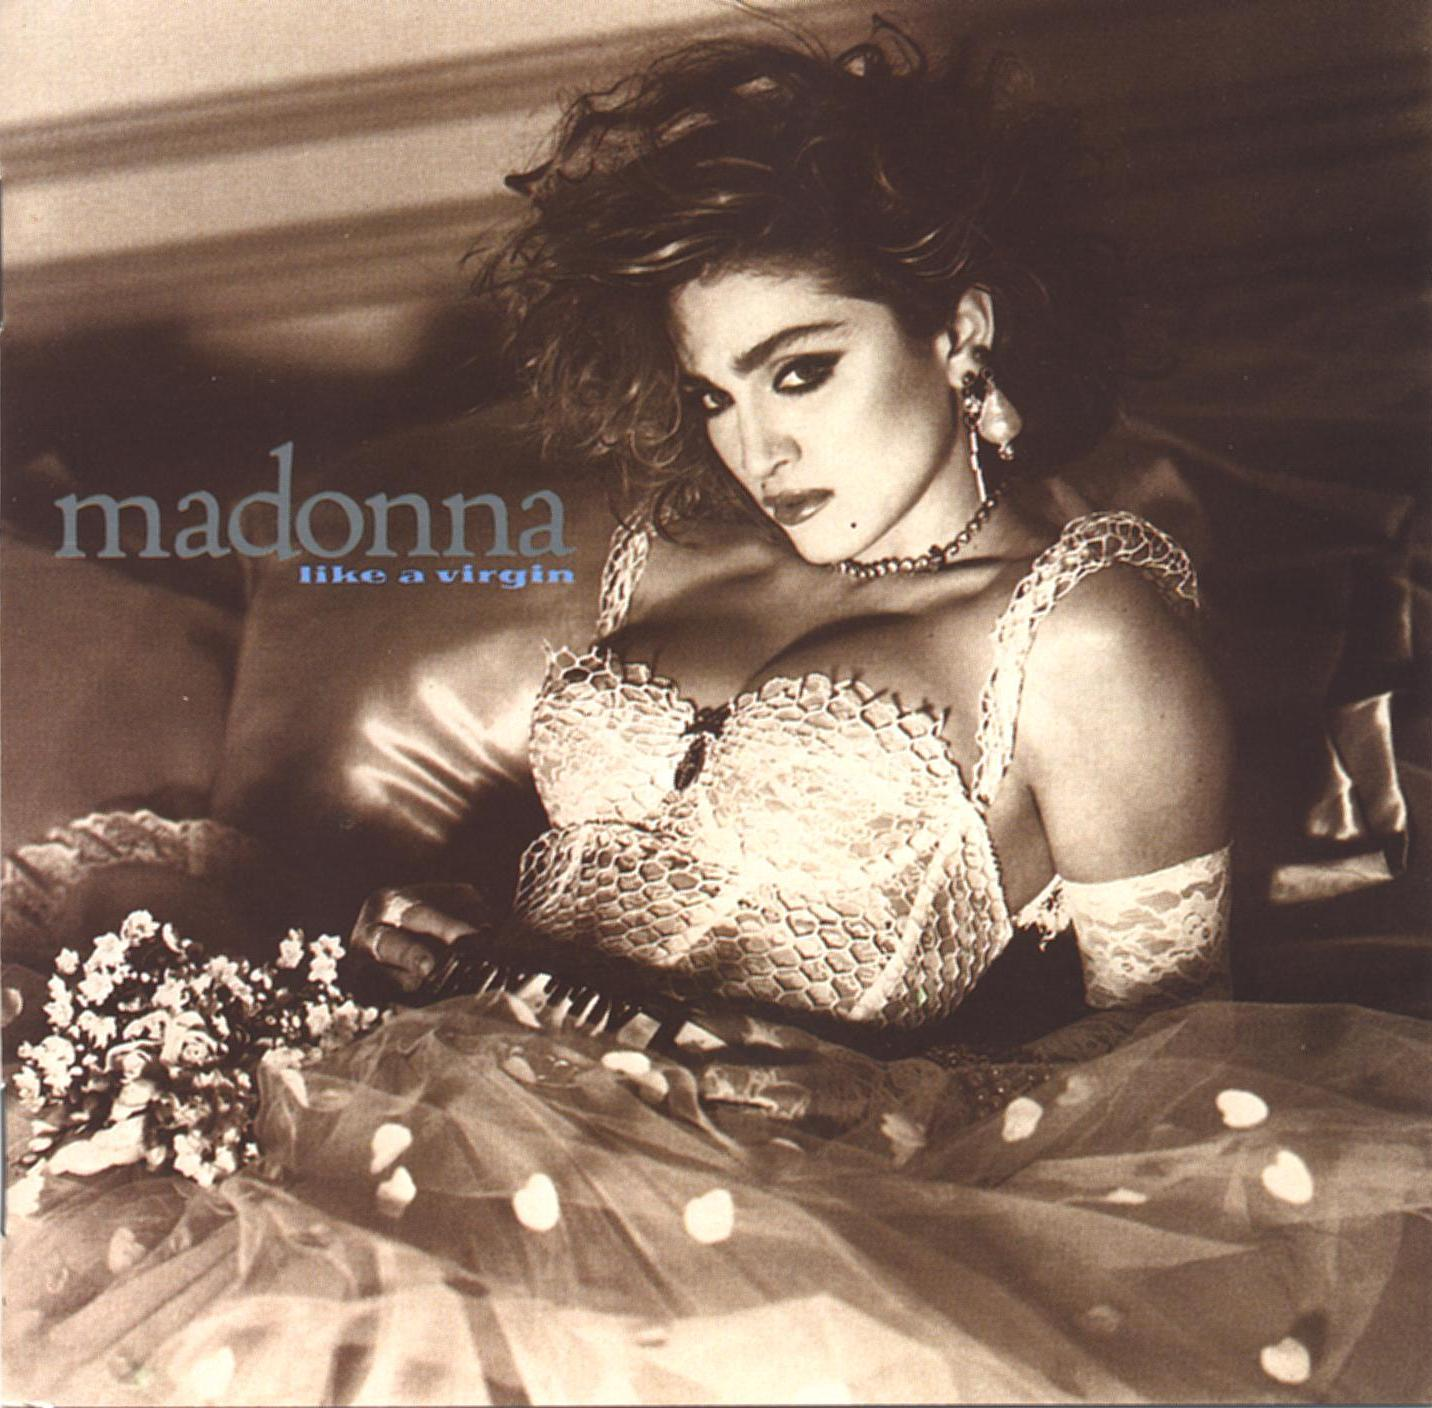 madonna-like-a-virgin-album-cd-cover.jpg